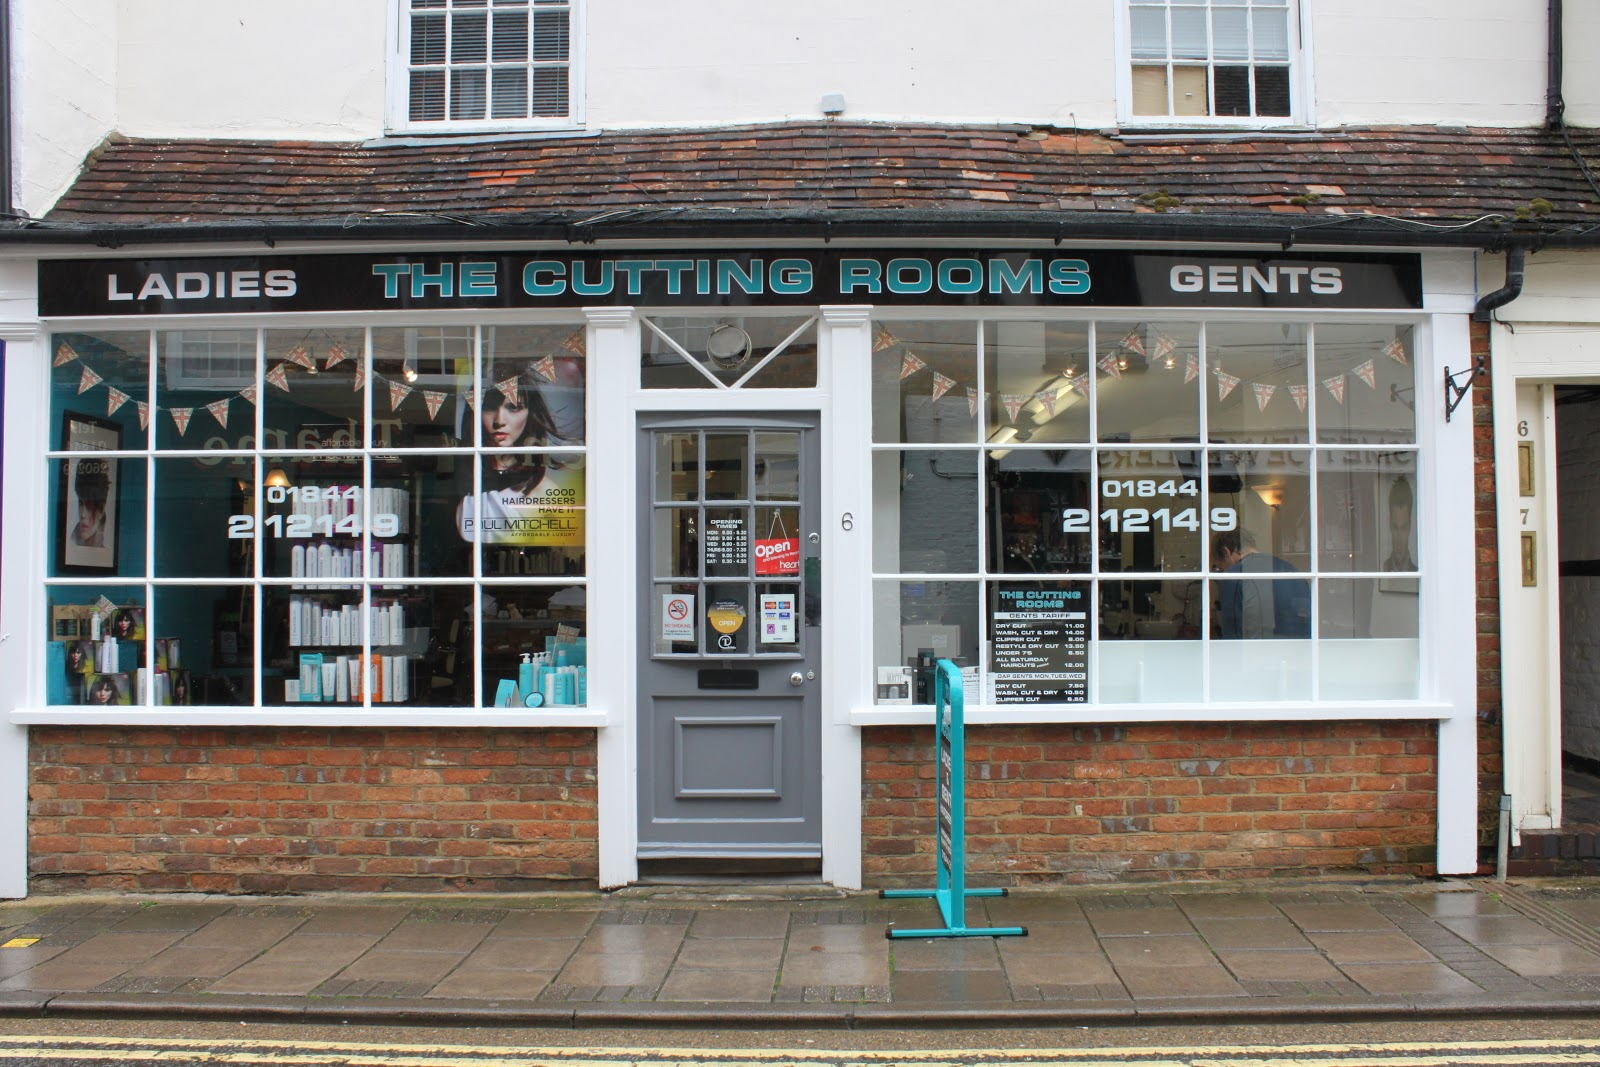 The Cutting Rooms